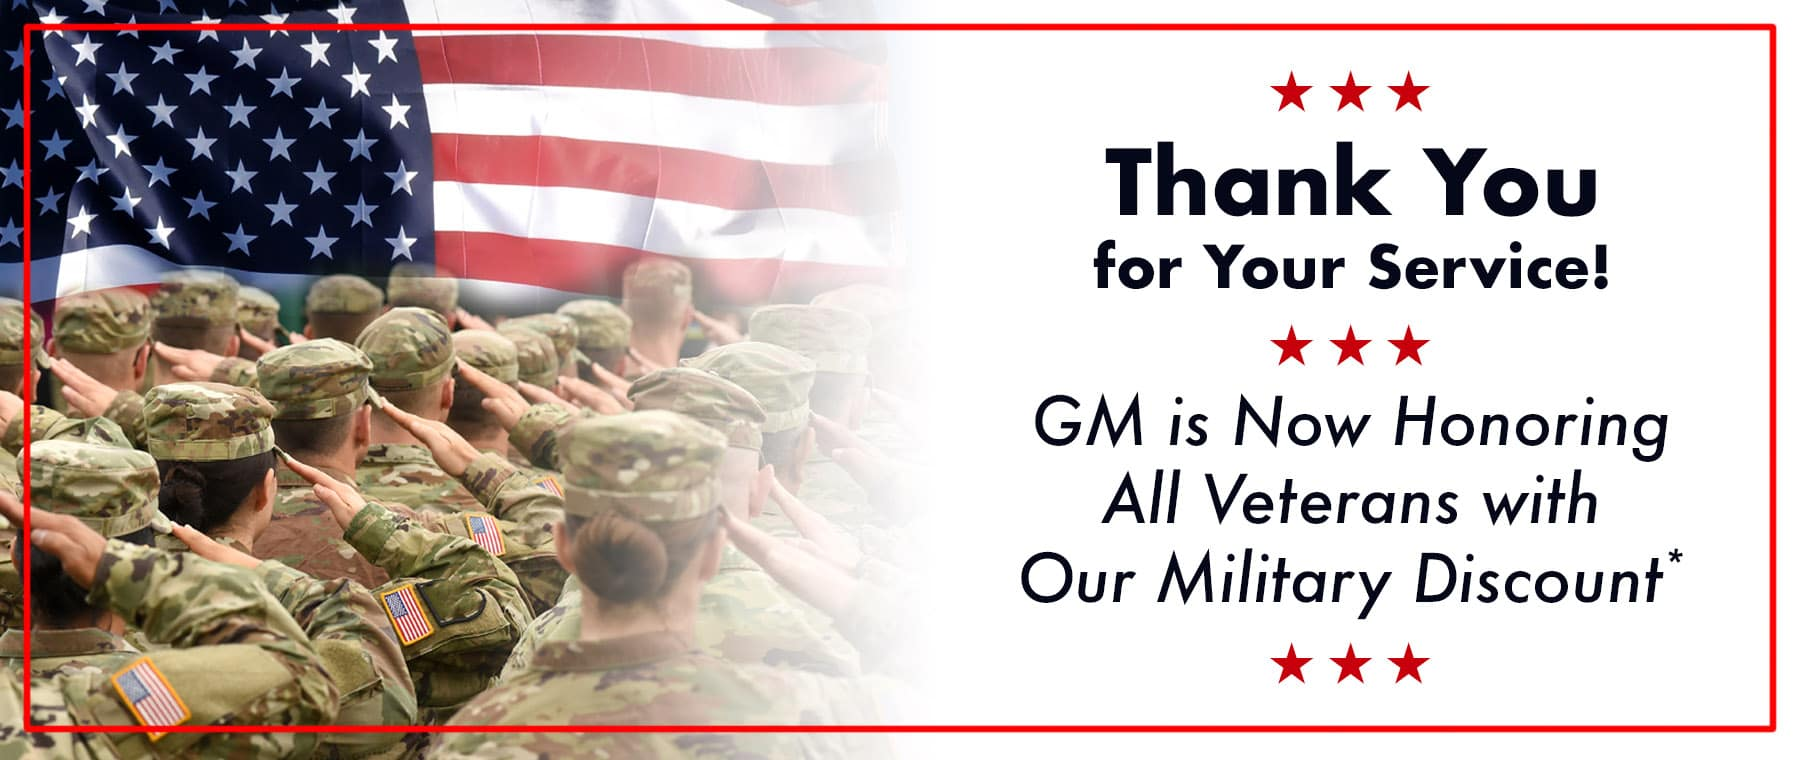 Thank you for your service! GM is now honoring all veterans with our Military Discount!